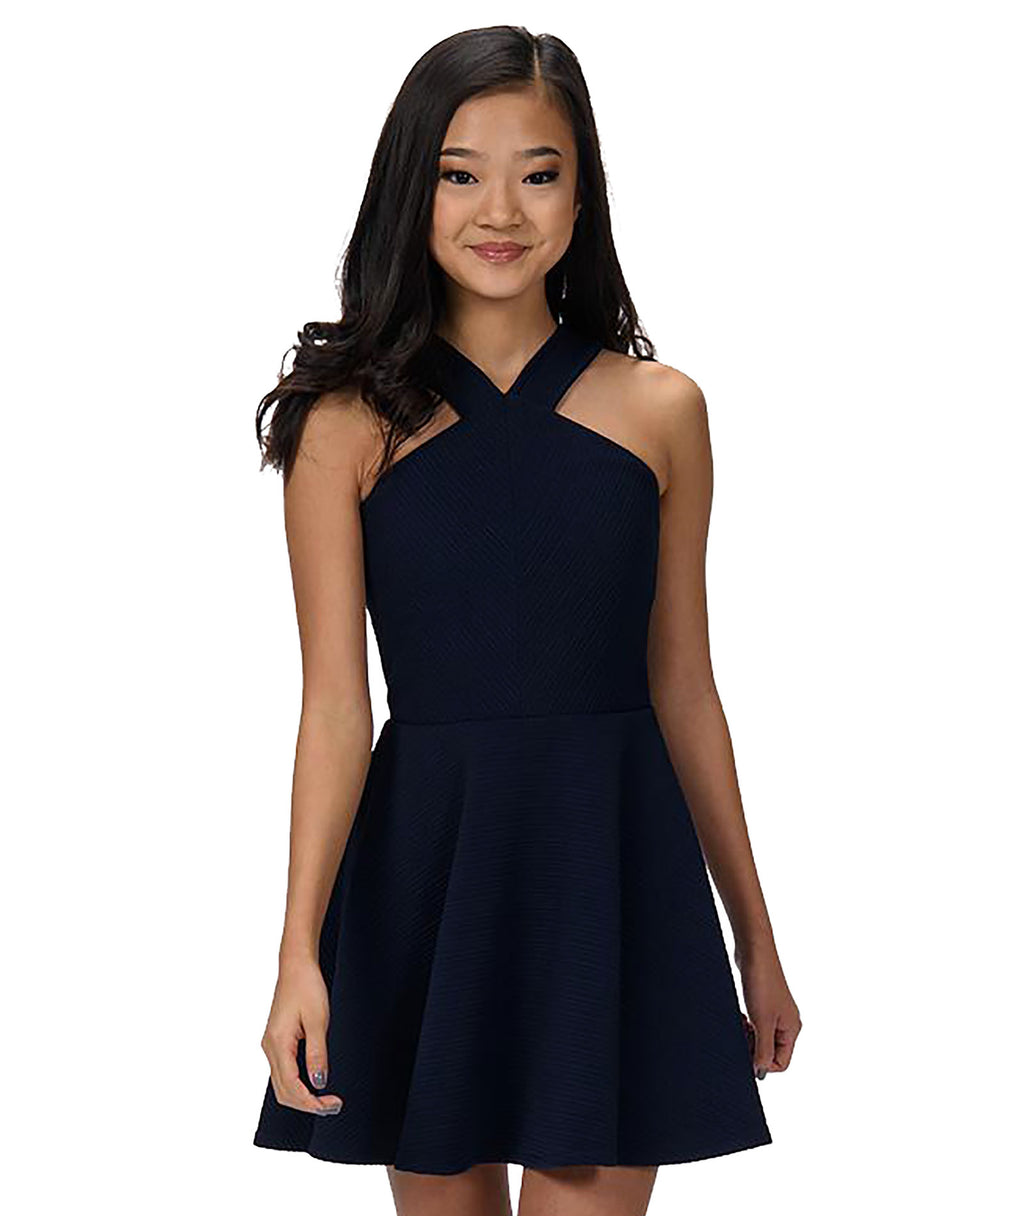 Sally Miller Girls Navy Kennedy Dress - Frankie's on the Park